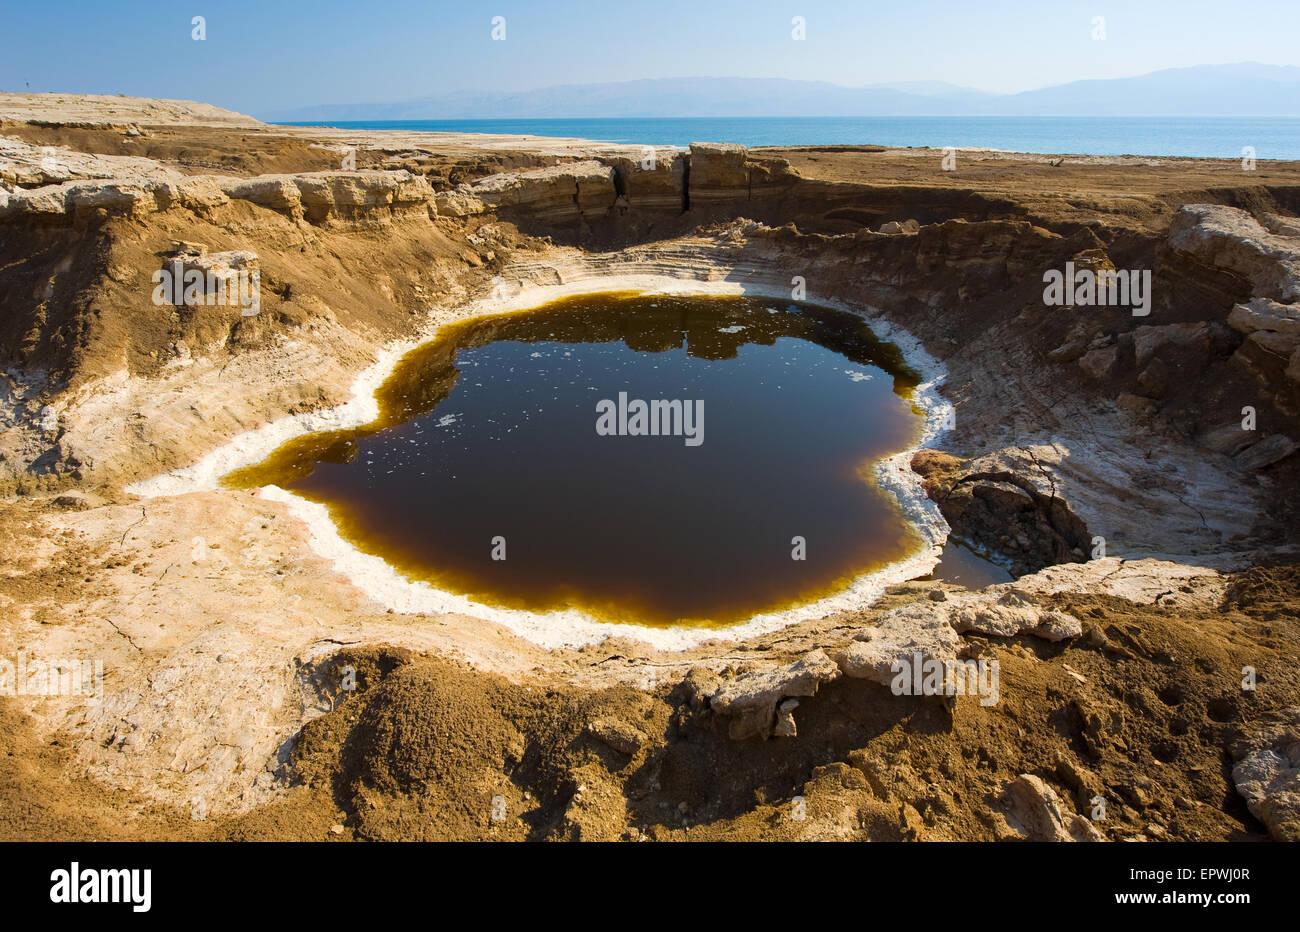 Sinkhole or open pit on the shore's of the dead sea at the end of the summer when the water level is at it's lowest Stock Photo